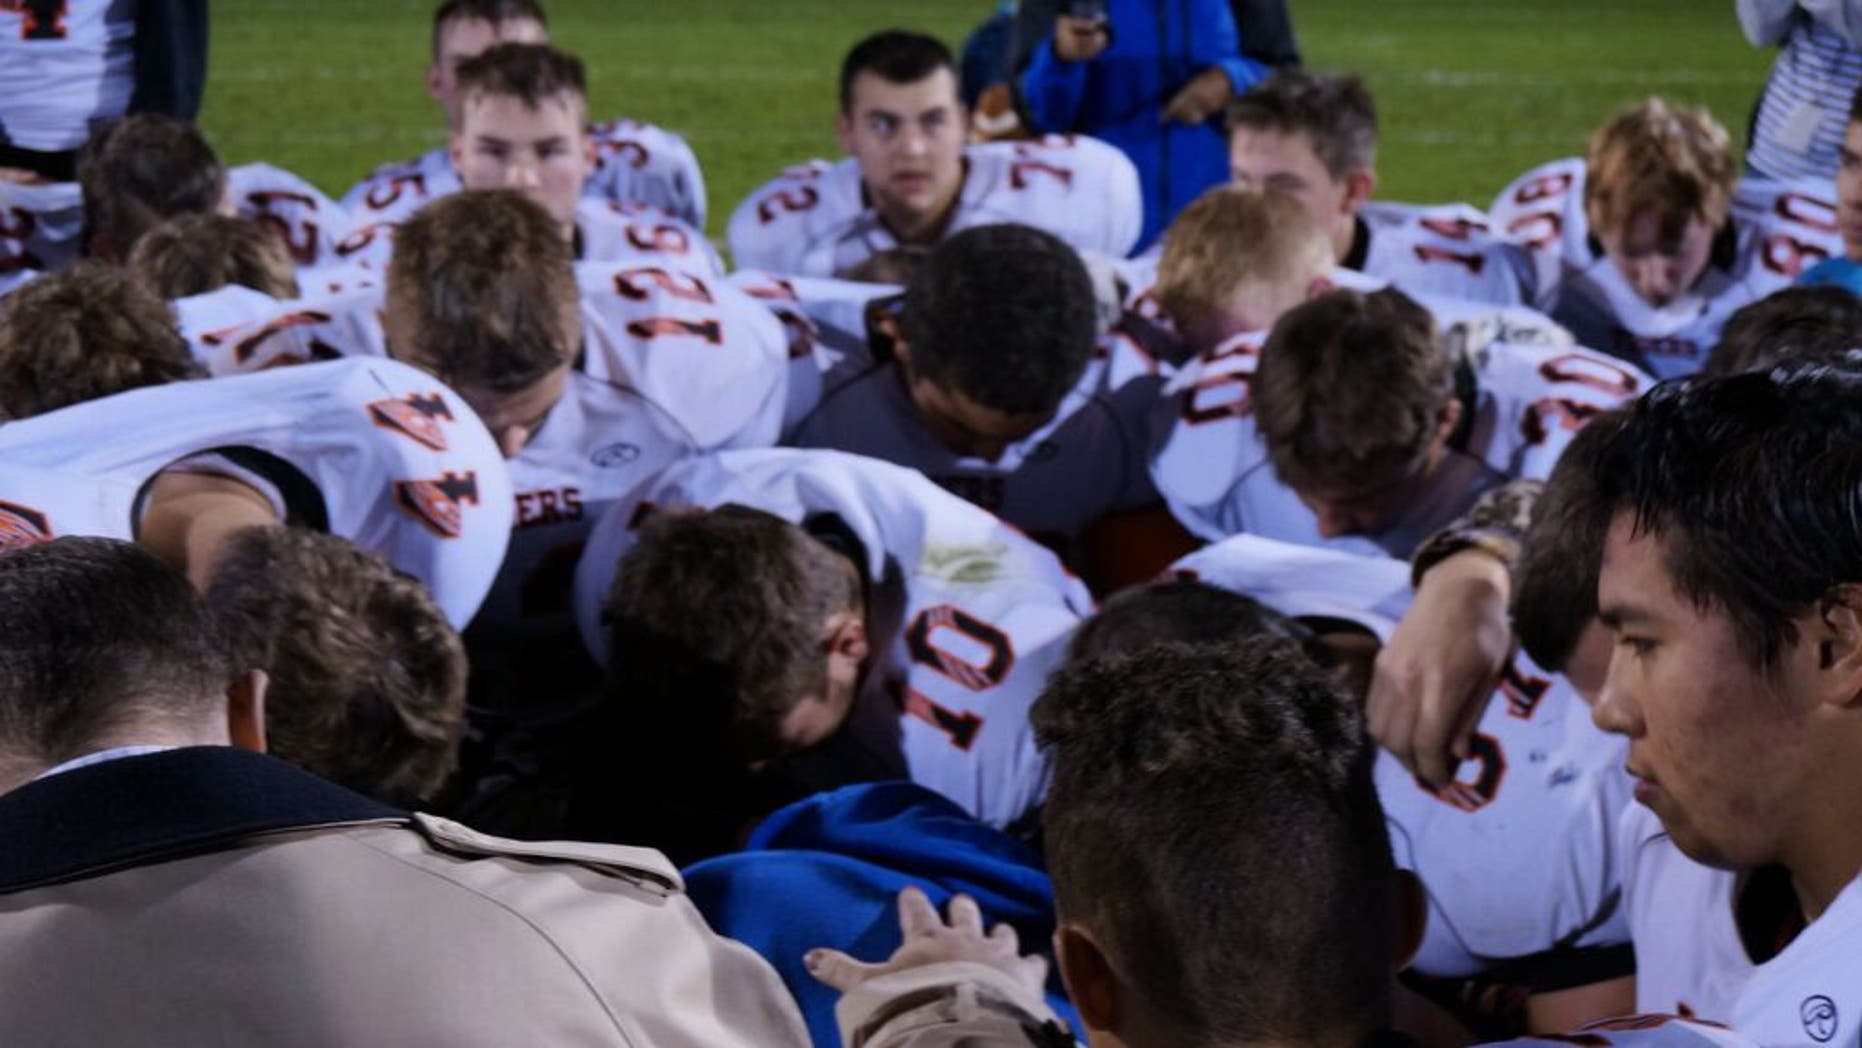 October 16: Coach Kennedy prays on the field after the high school's homecoming game. (Courtesy Liberty Institute)